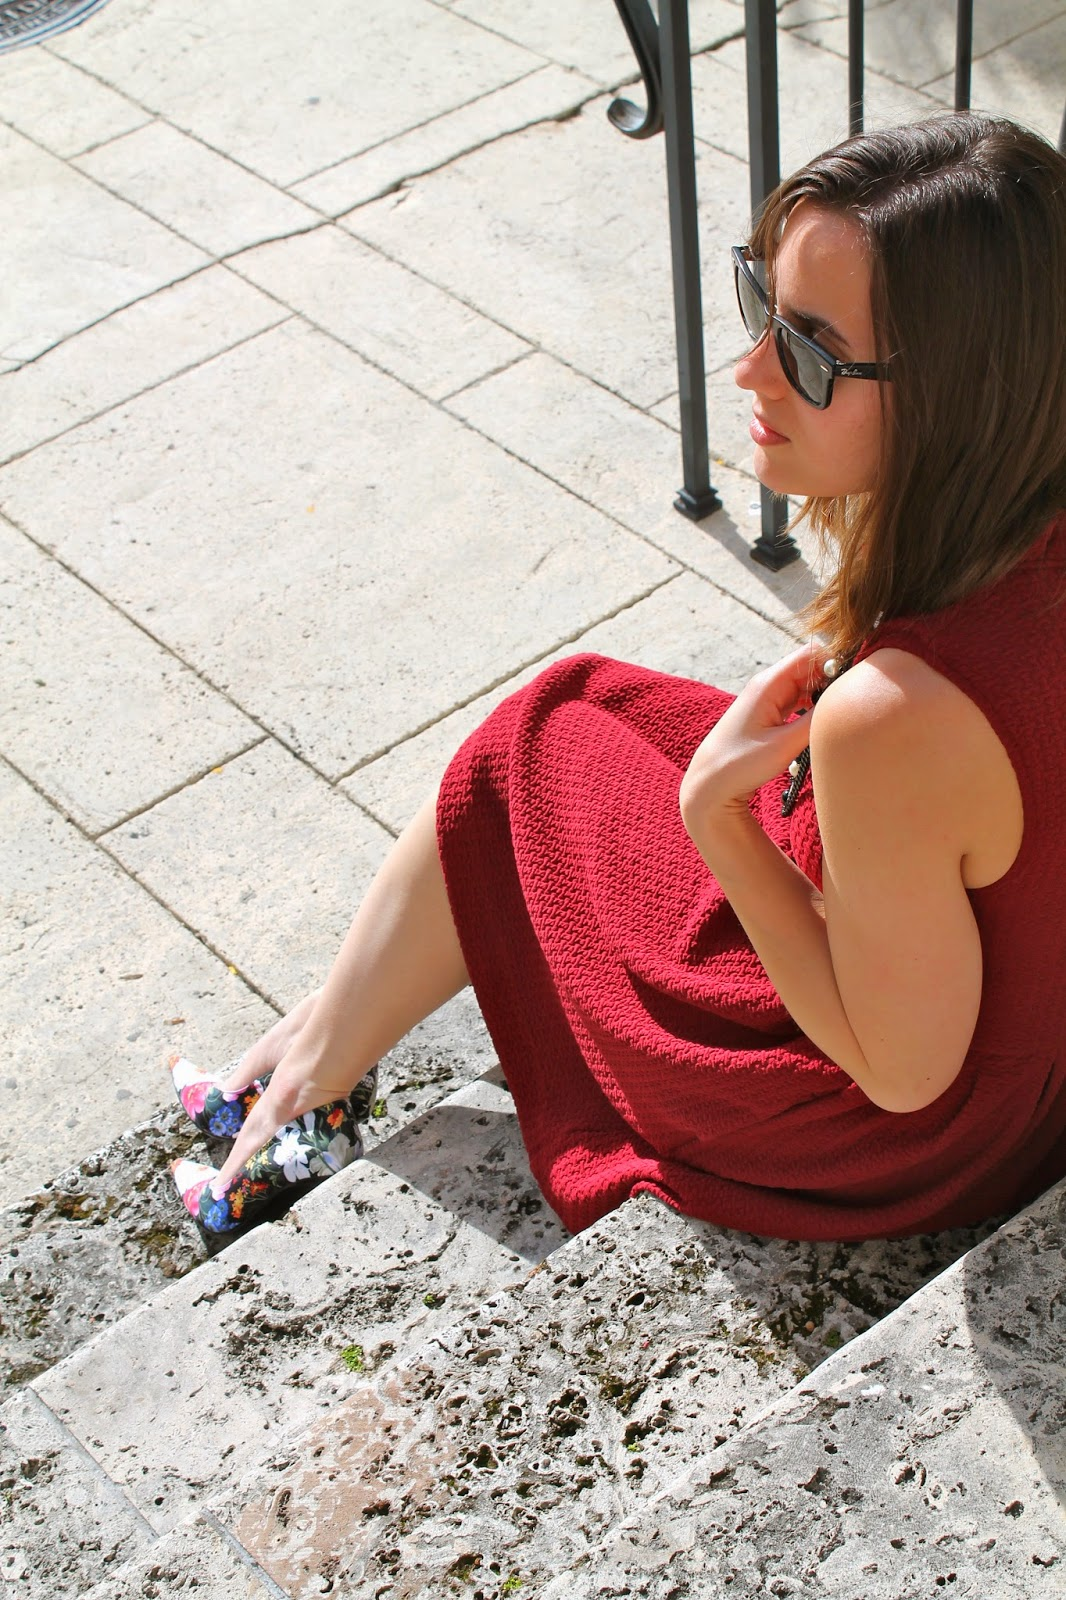 Anthropologie, Ray-Ban, nordstrom, chanel, Kate Spade, ootd, lookbook, what i wore, blogger style, style blog, fashion blog